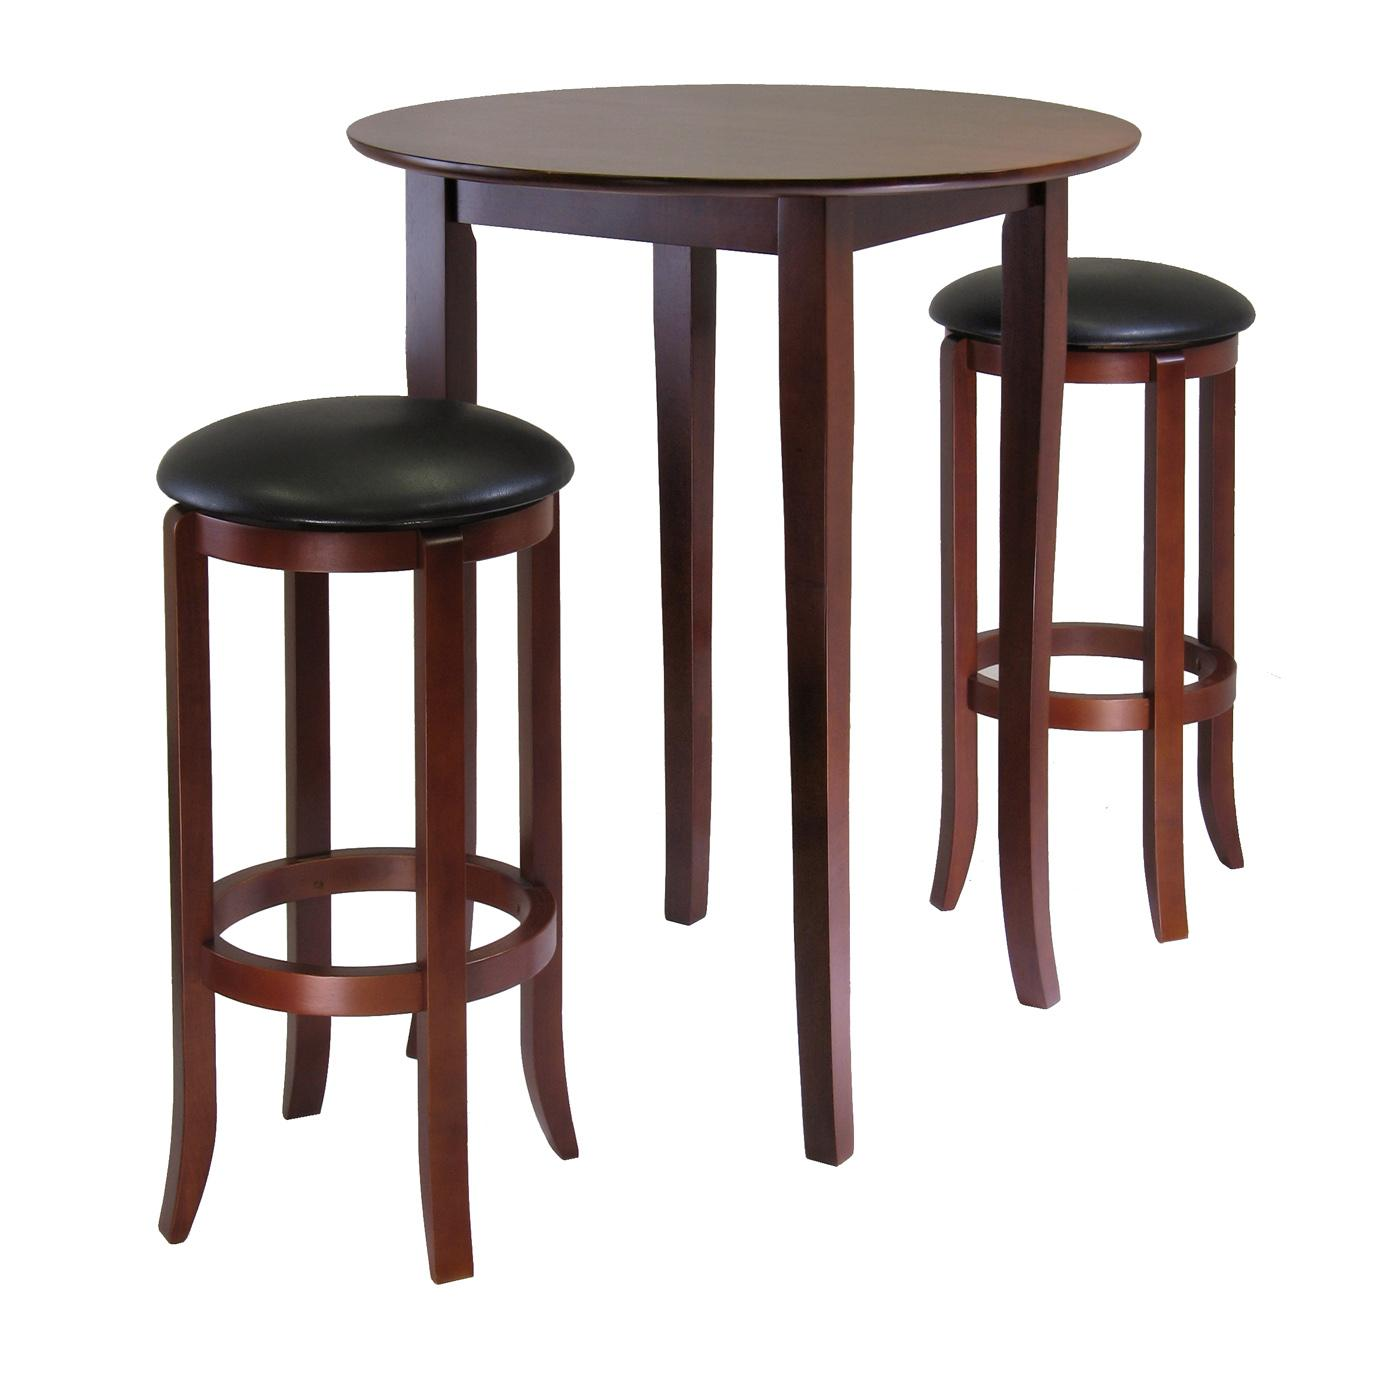 View larger  sc 1 st  Amazon.com & Amazon.com: Winsome Fiona 3-Piece Round High Pub Table Set in ...